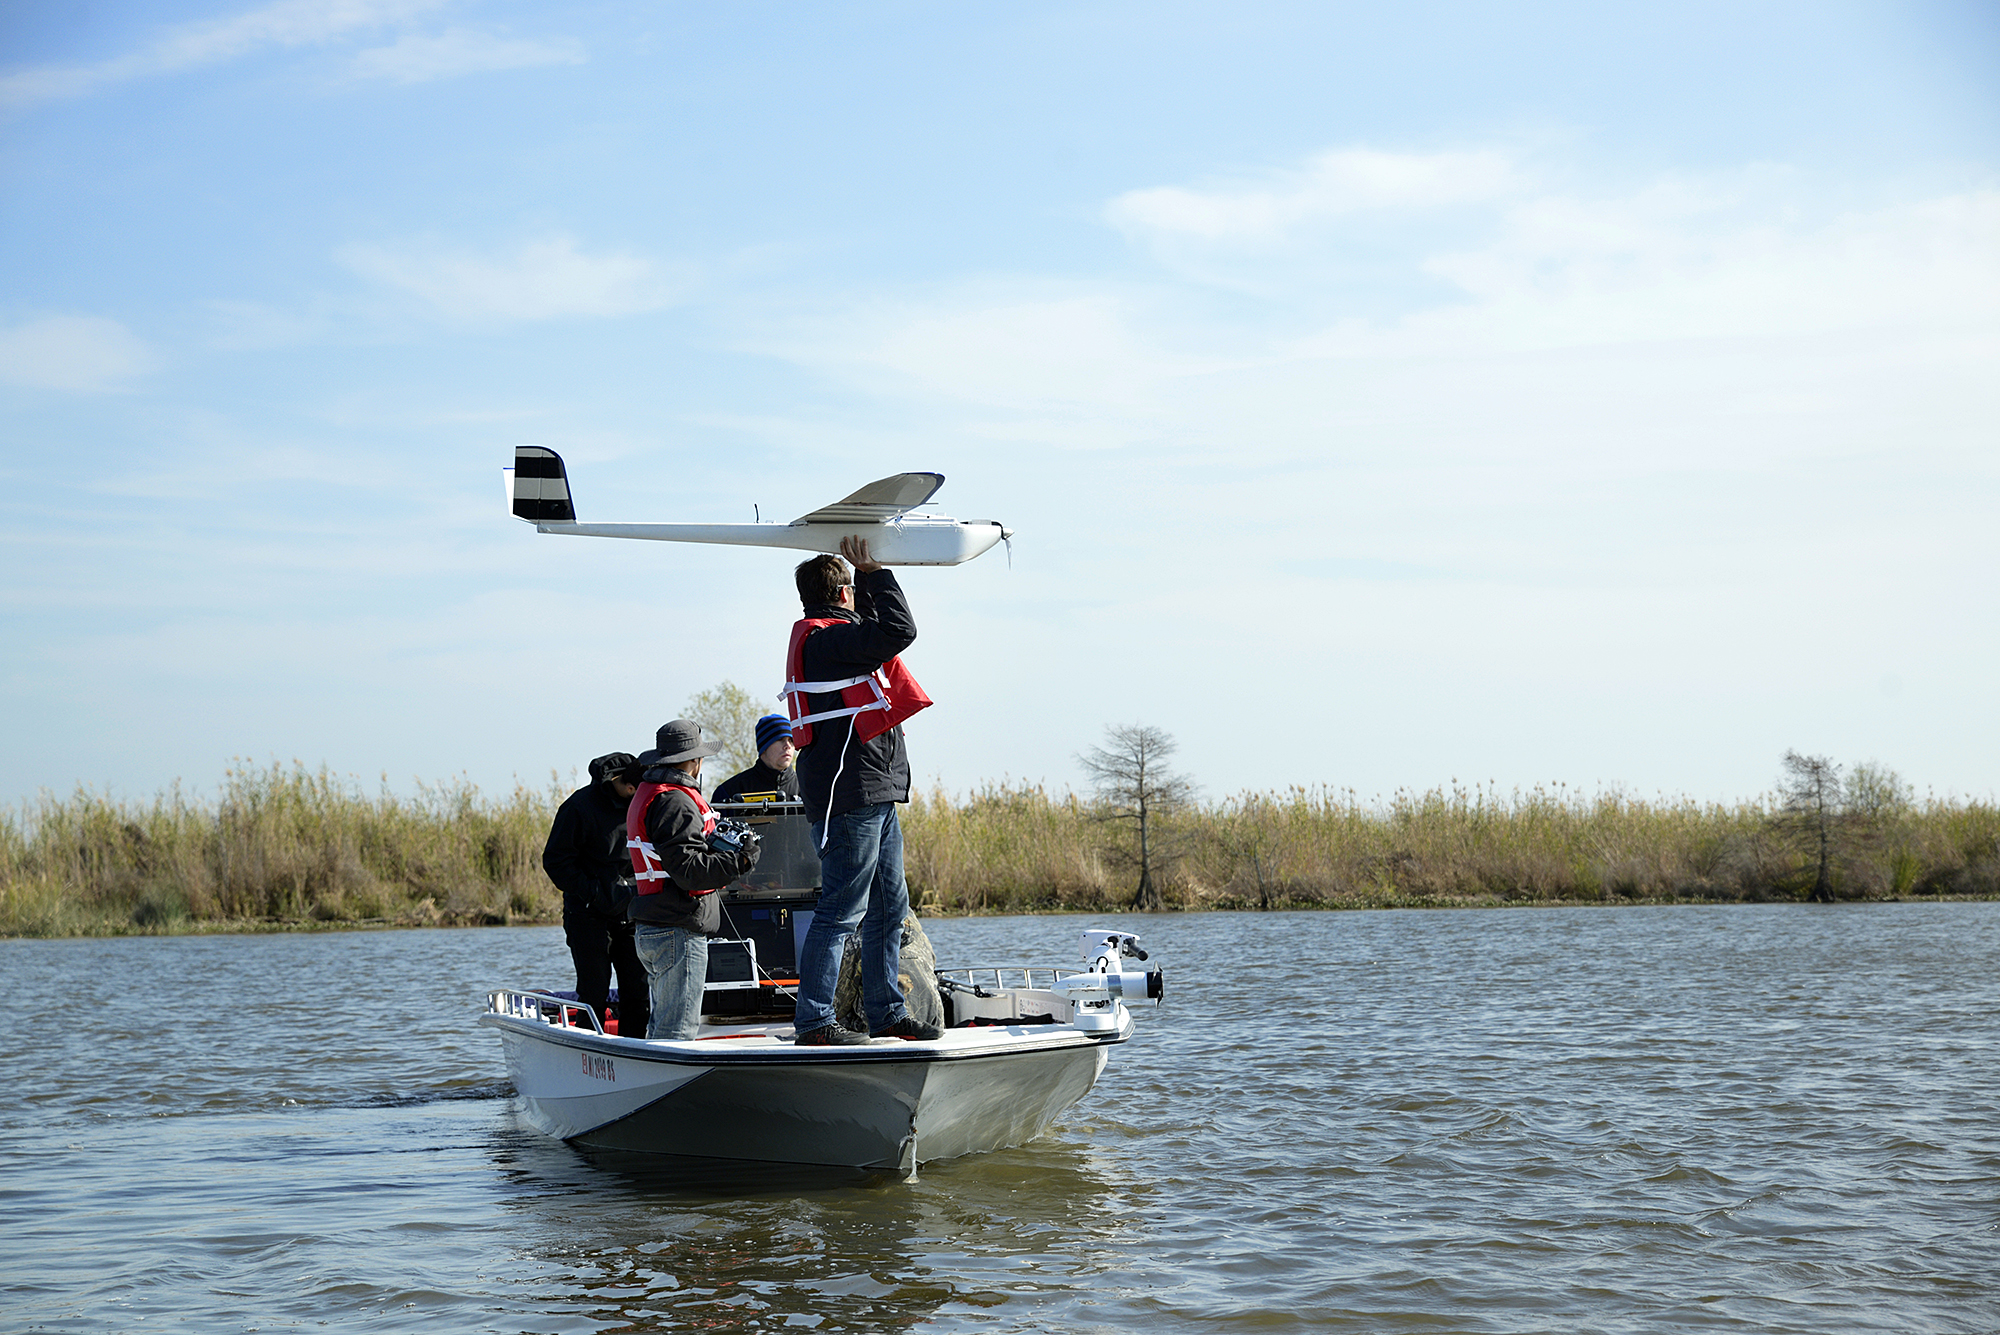 An unmanned aerial vehicle is prepared for launch on Thursday [Dec. 18] in St. Tammany Parish, Louisiana. Researchers with Mississippi State and NOAA are mapping sections of the Pearl River with the UAV to better understand where and how much water flows through the area and the impact it can have on local communities when hurricanes and other tropical weather systems develop.